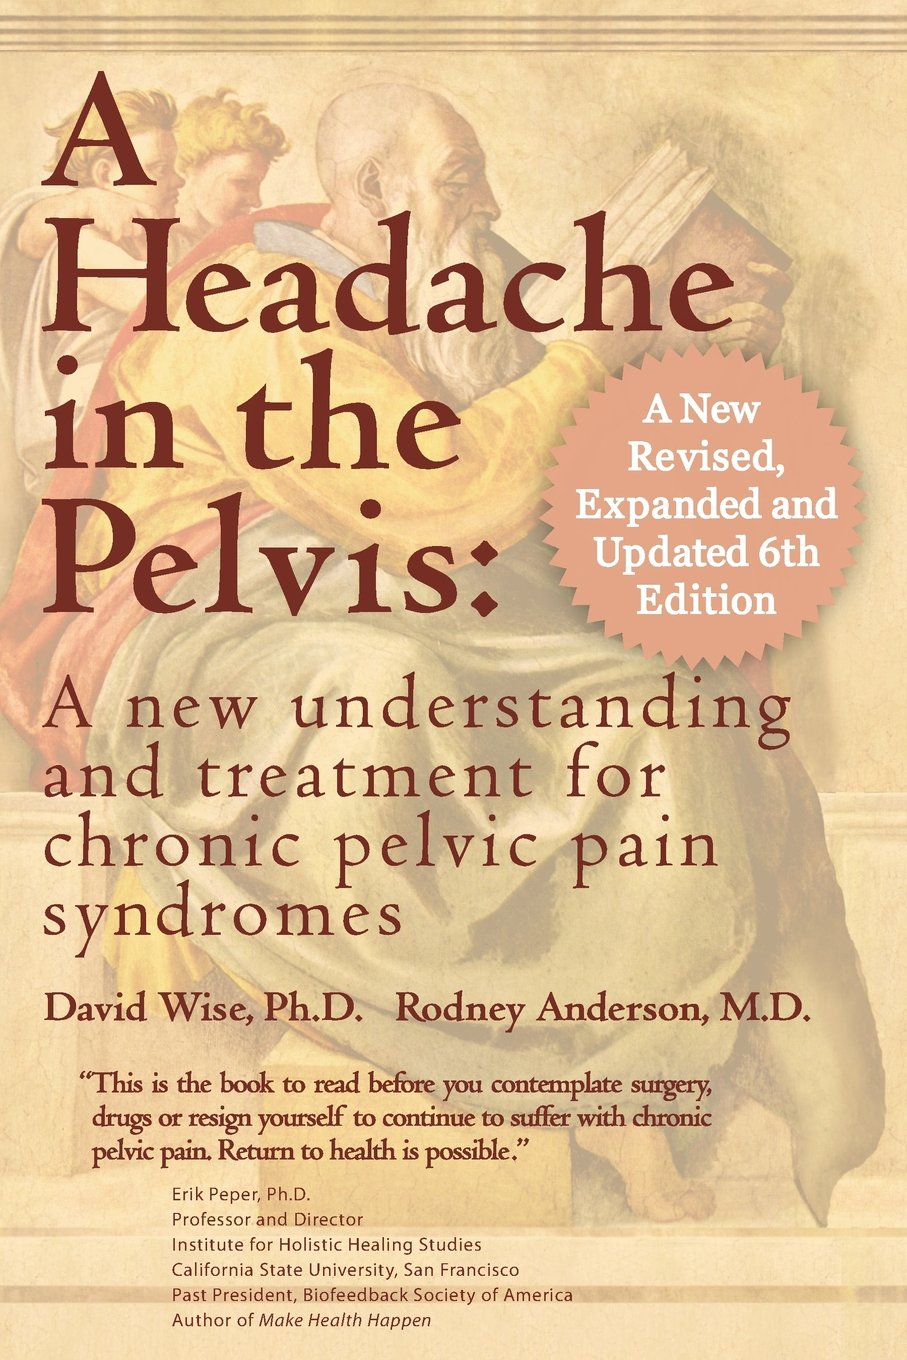 A Headache in the Pelvis, a New Expanded 6th Edition: A New Understanding and Treatment for Chronic Pelvic Pain Syndromes PDF